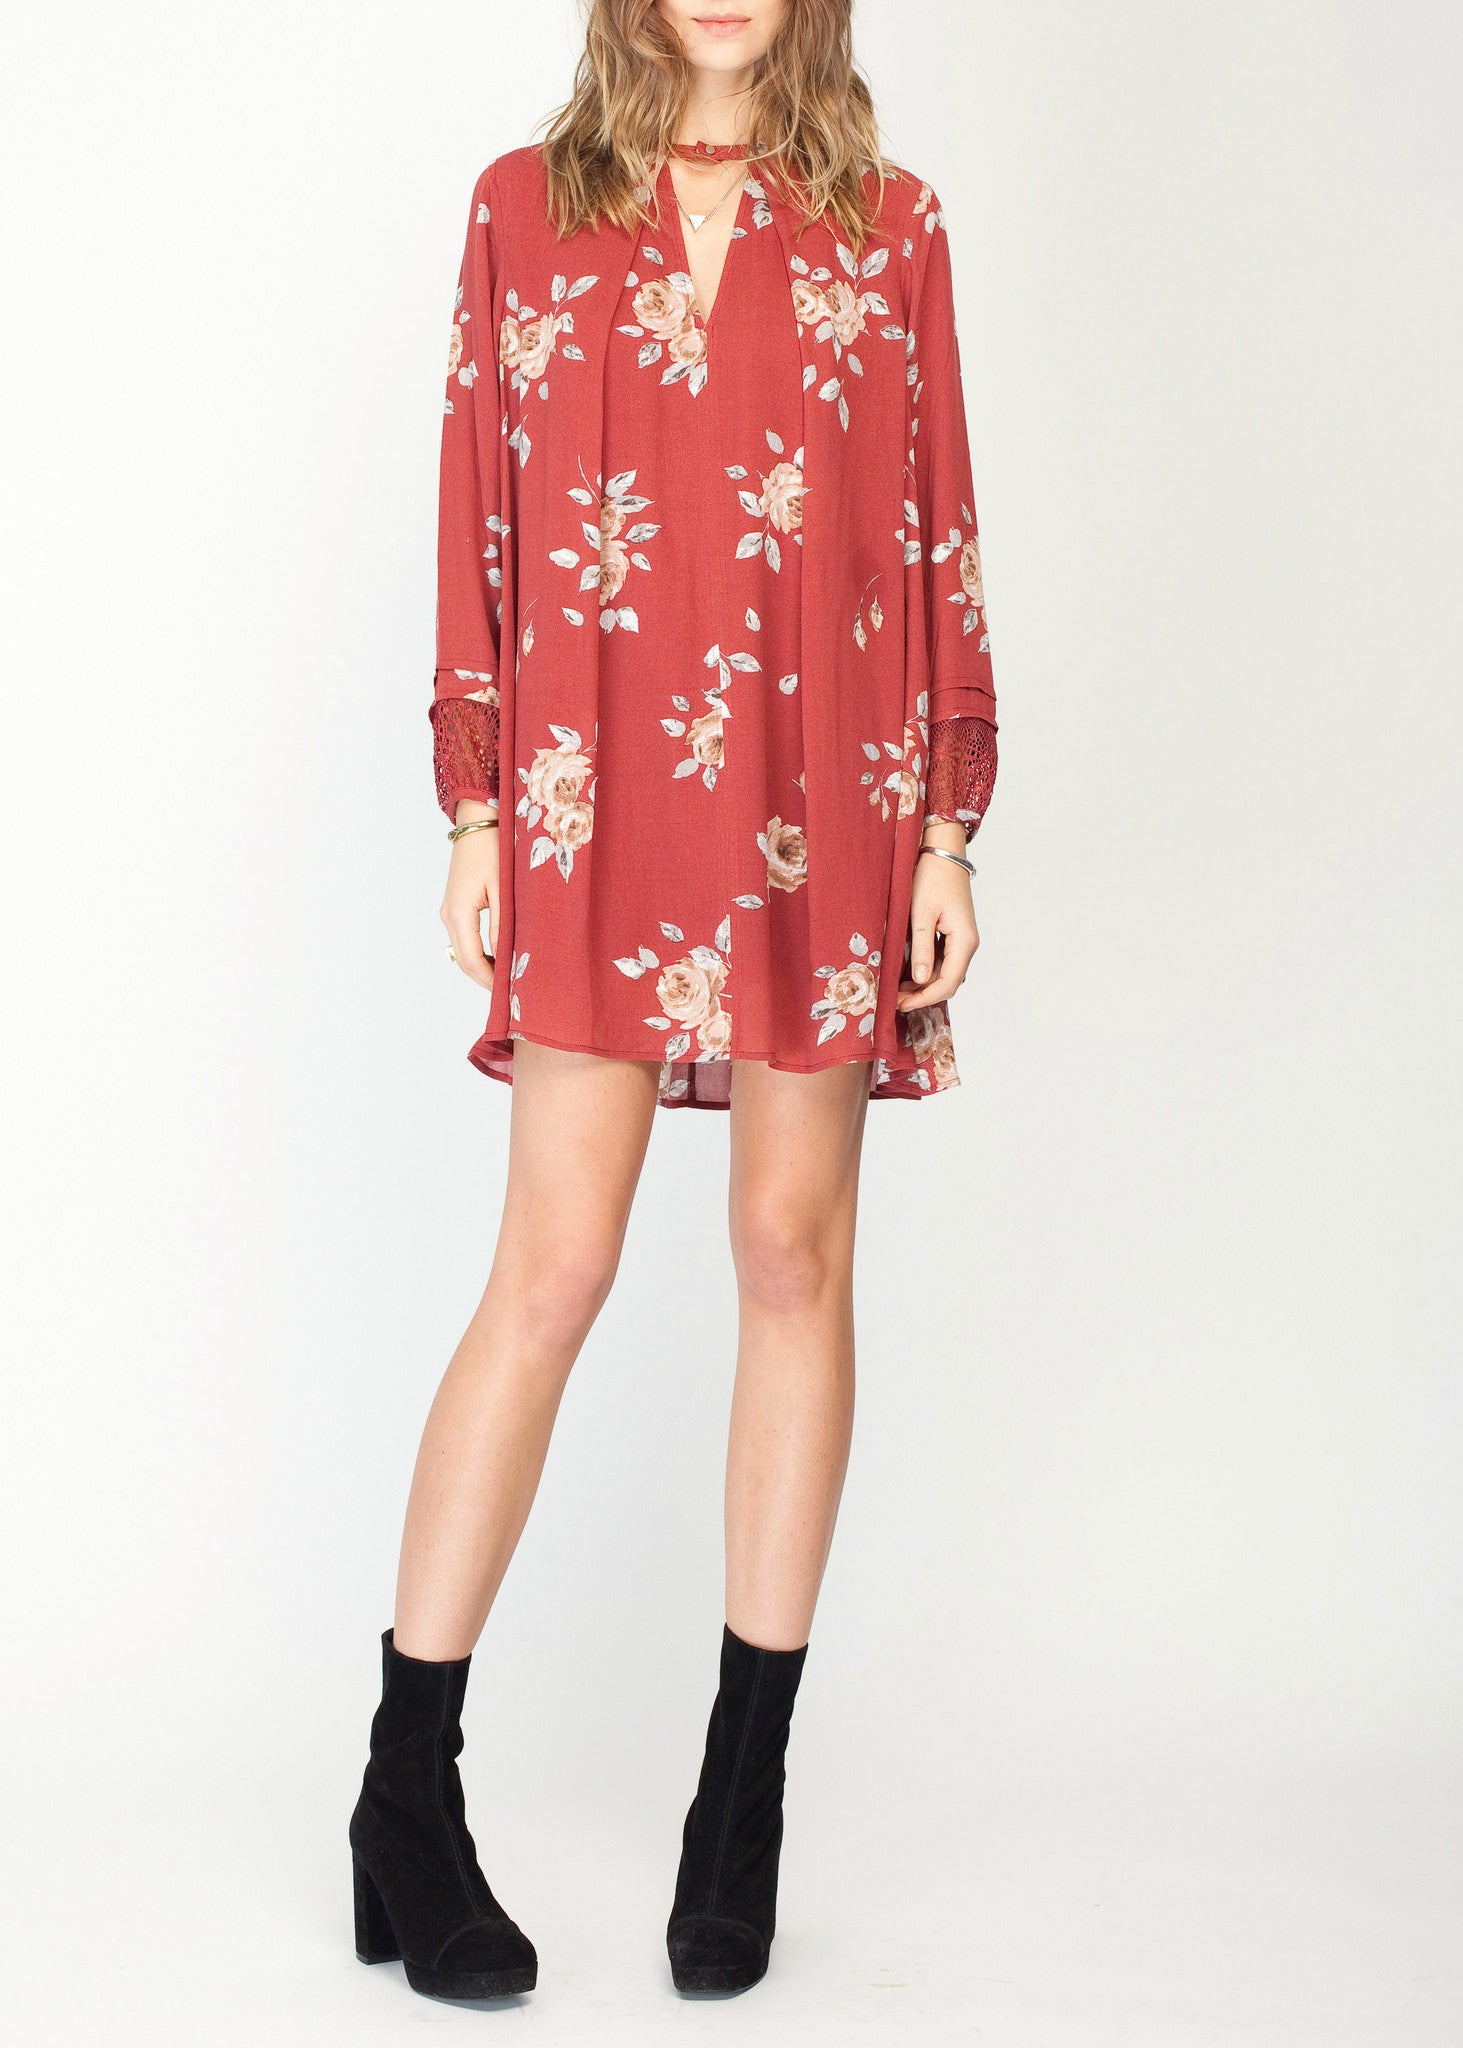 Utopia Bloom Dress